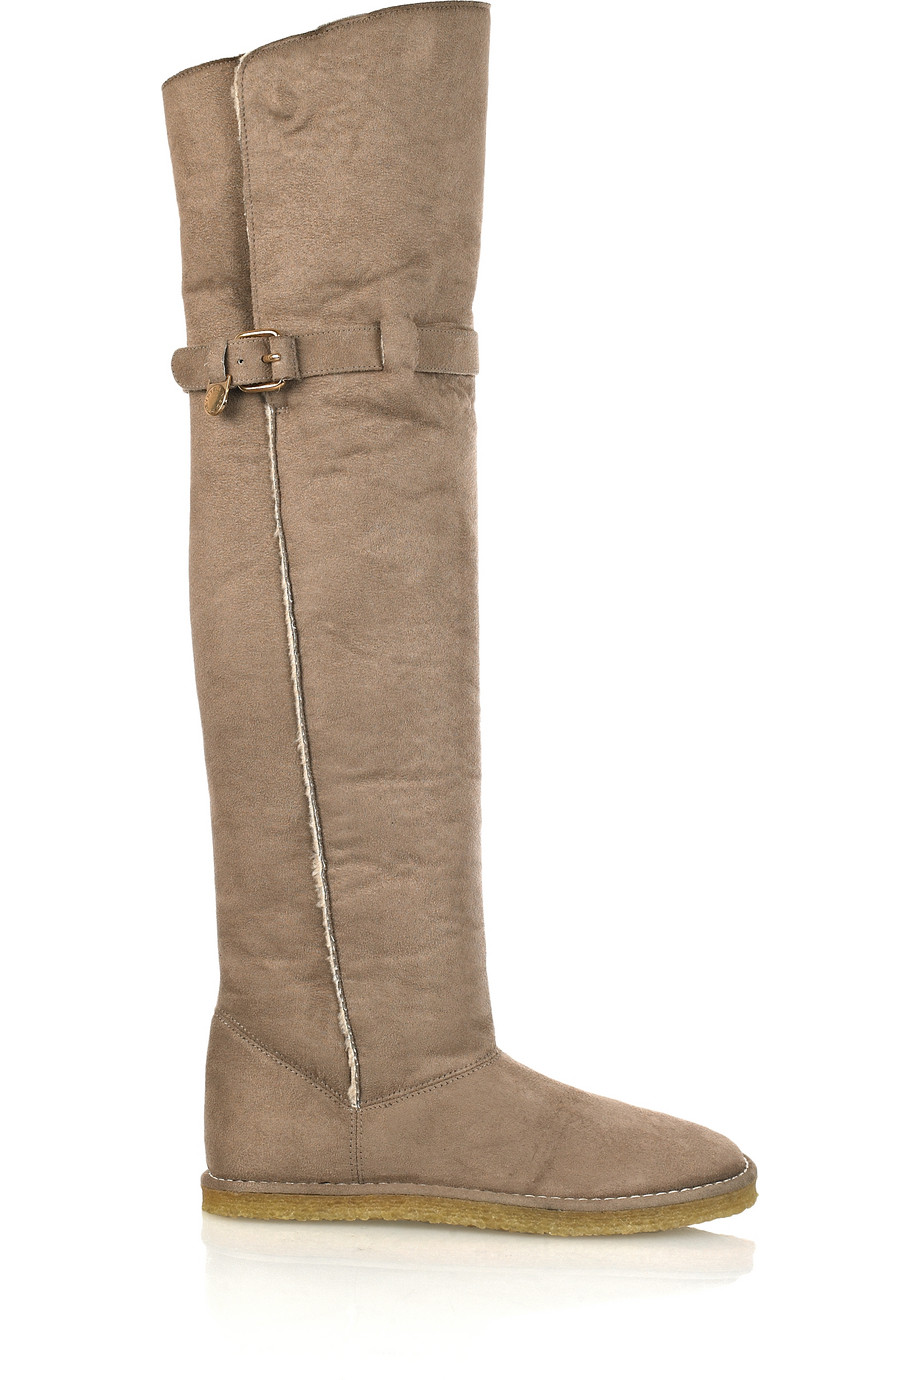 Lyst Stella Mccartney Shearling Lined Thigh Boots In Brown